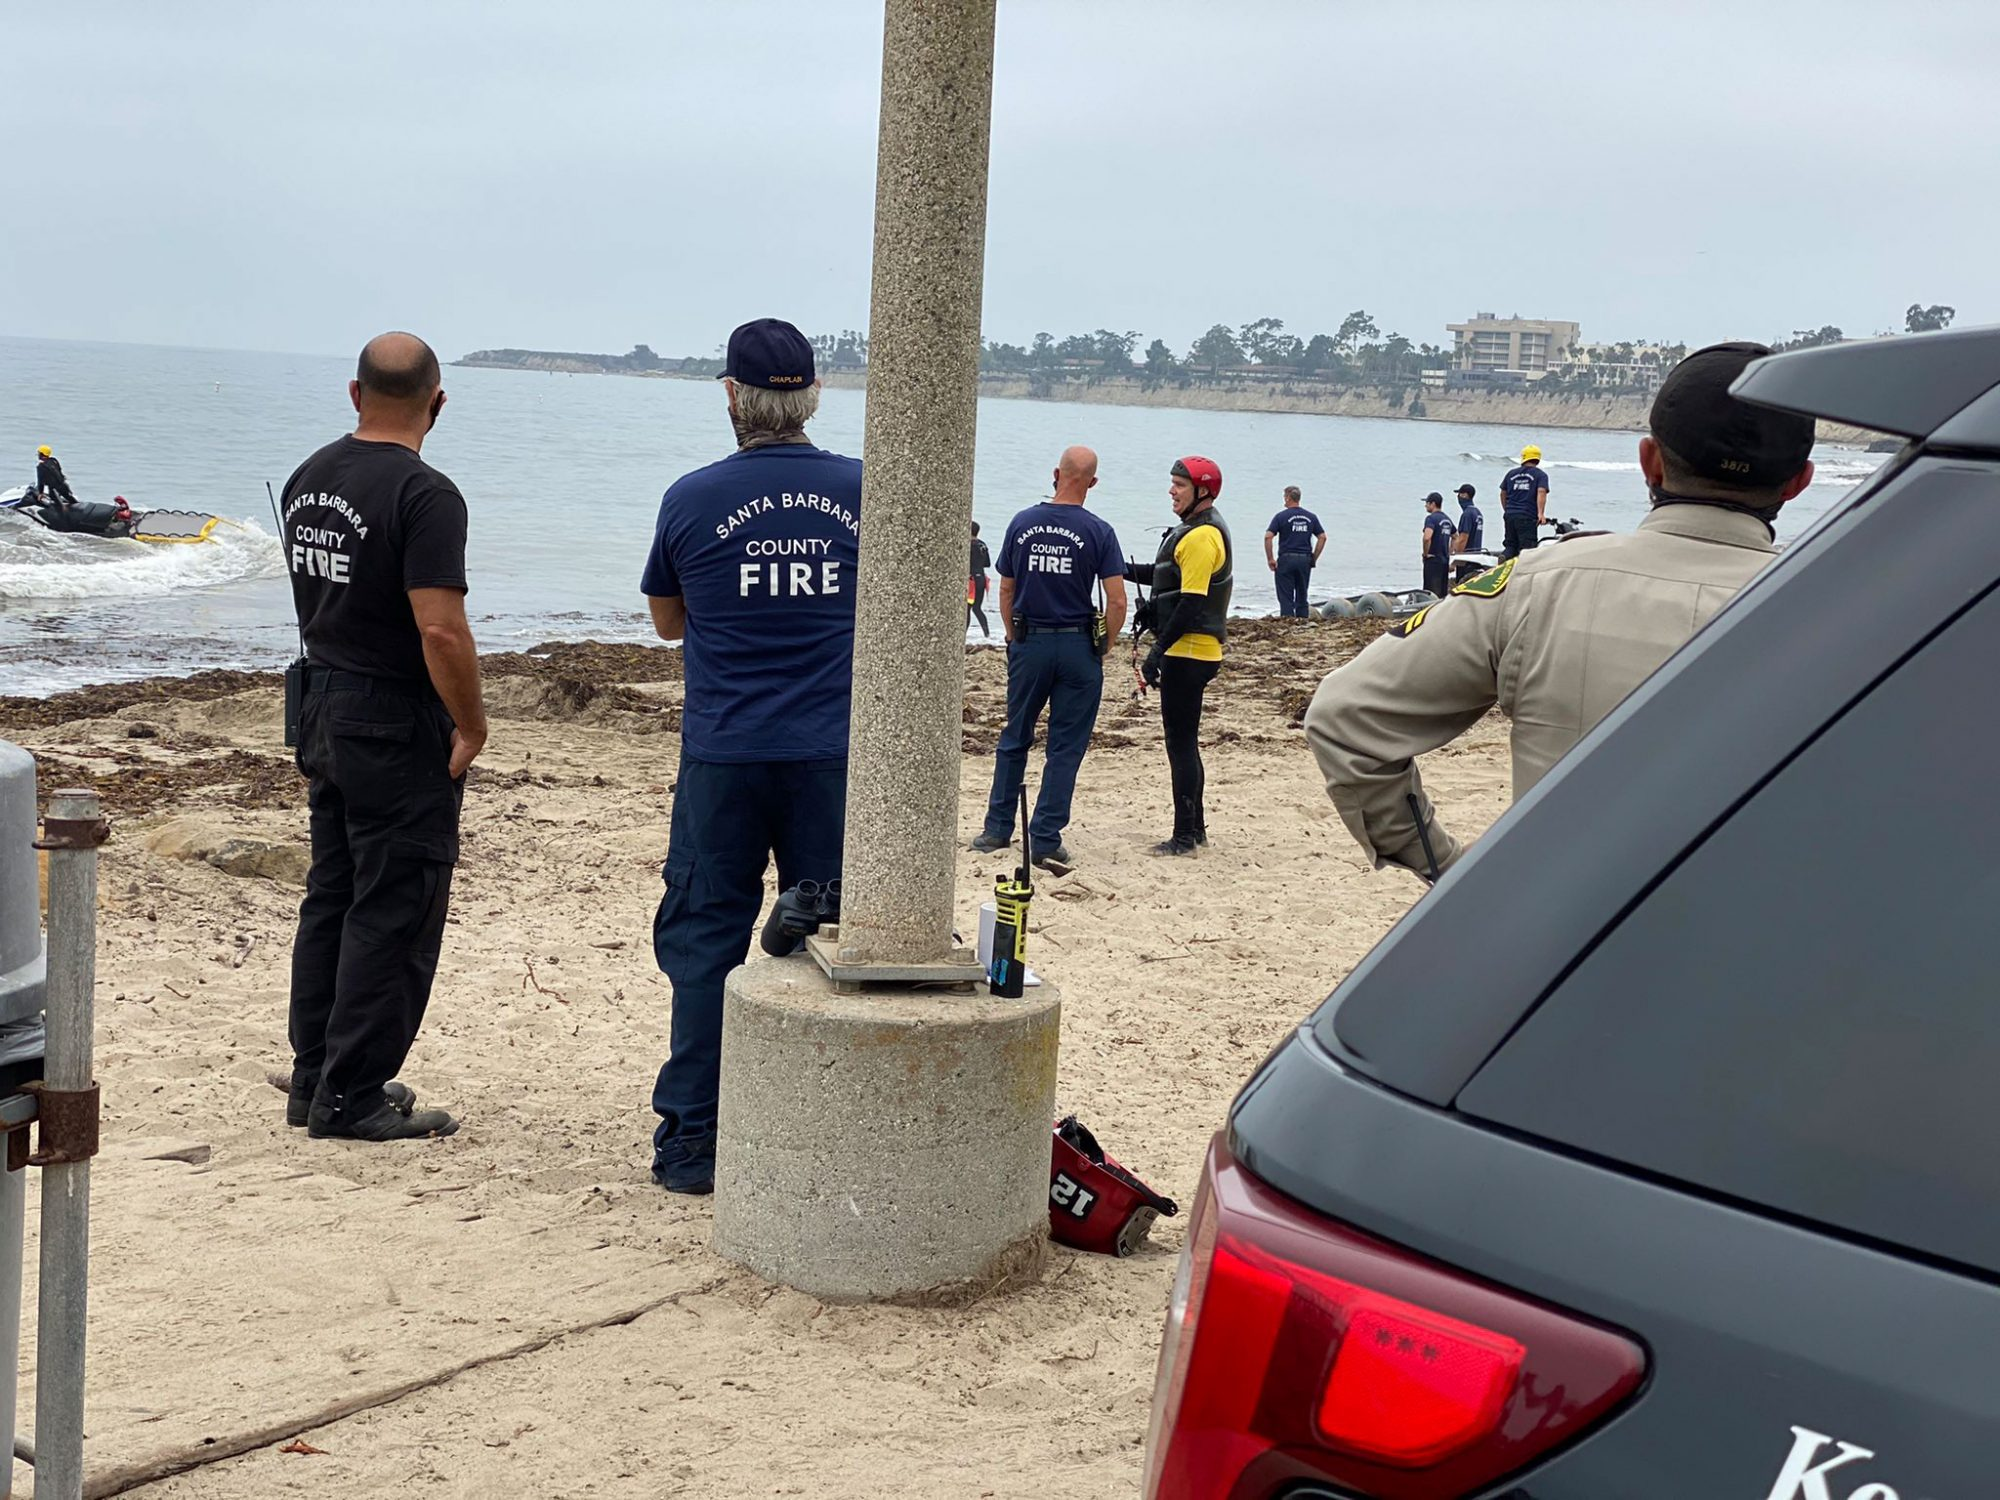 Sheriff's deputies and County Air Support are assisting Coast Guard with report of a plane crash 2 miles off Campus Point